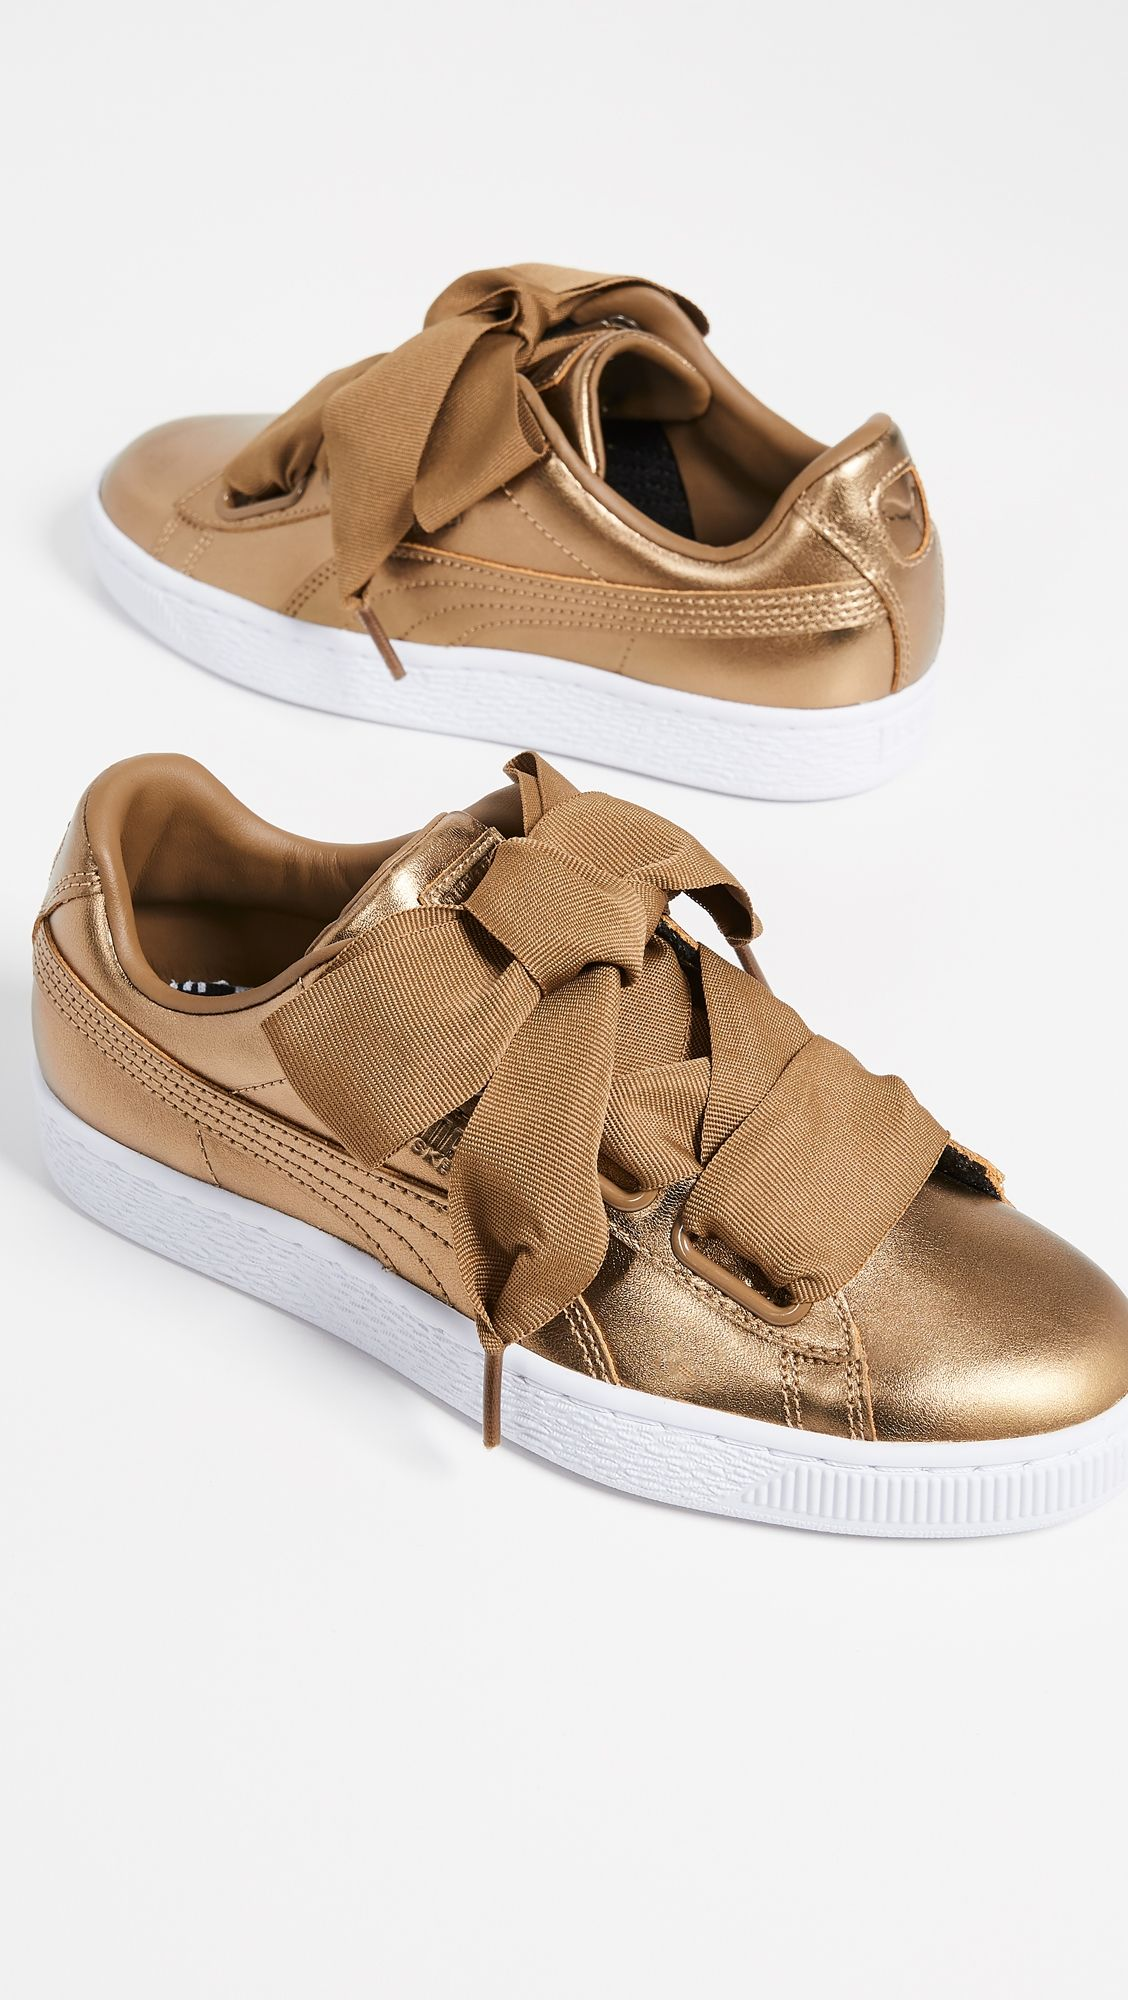 grand choix de c2be6 1c37c Basket Heart Luxe Sneakers   Products in 2019   Puma basket ...